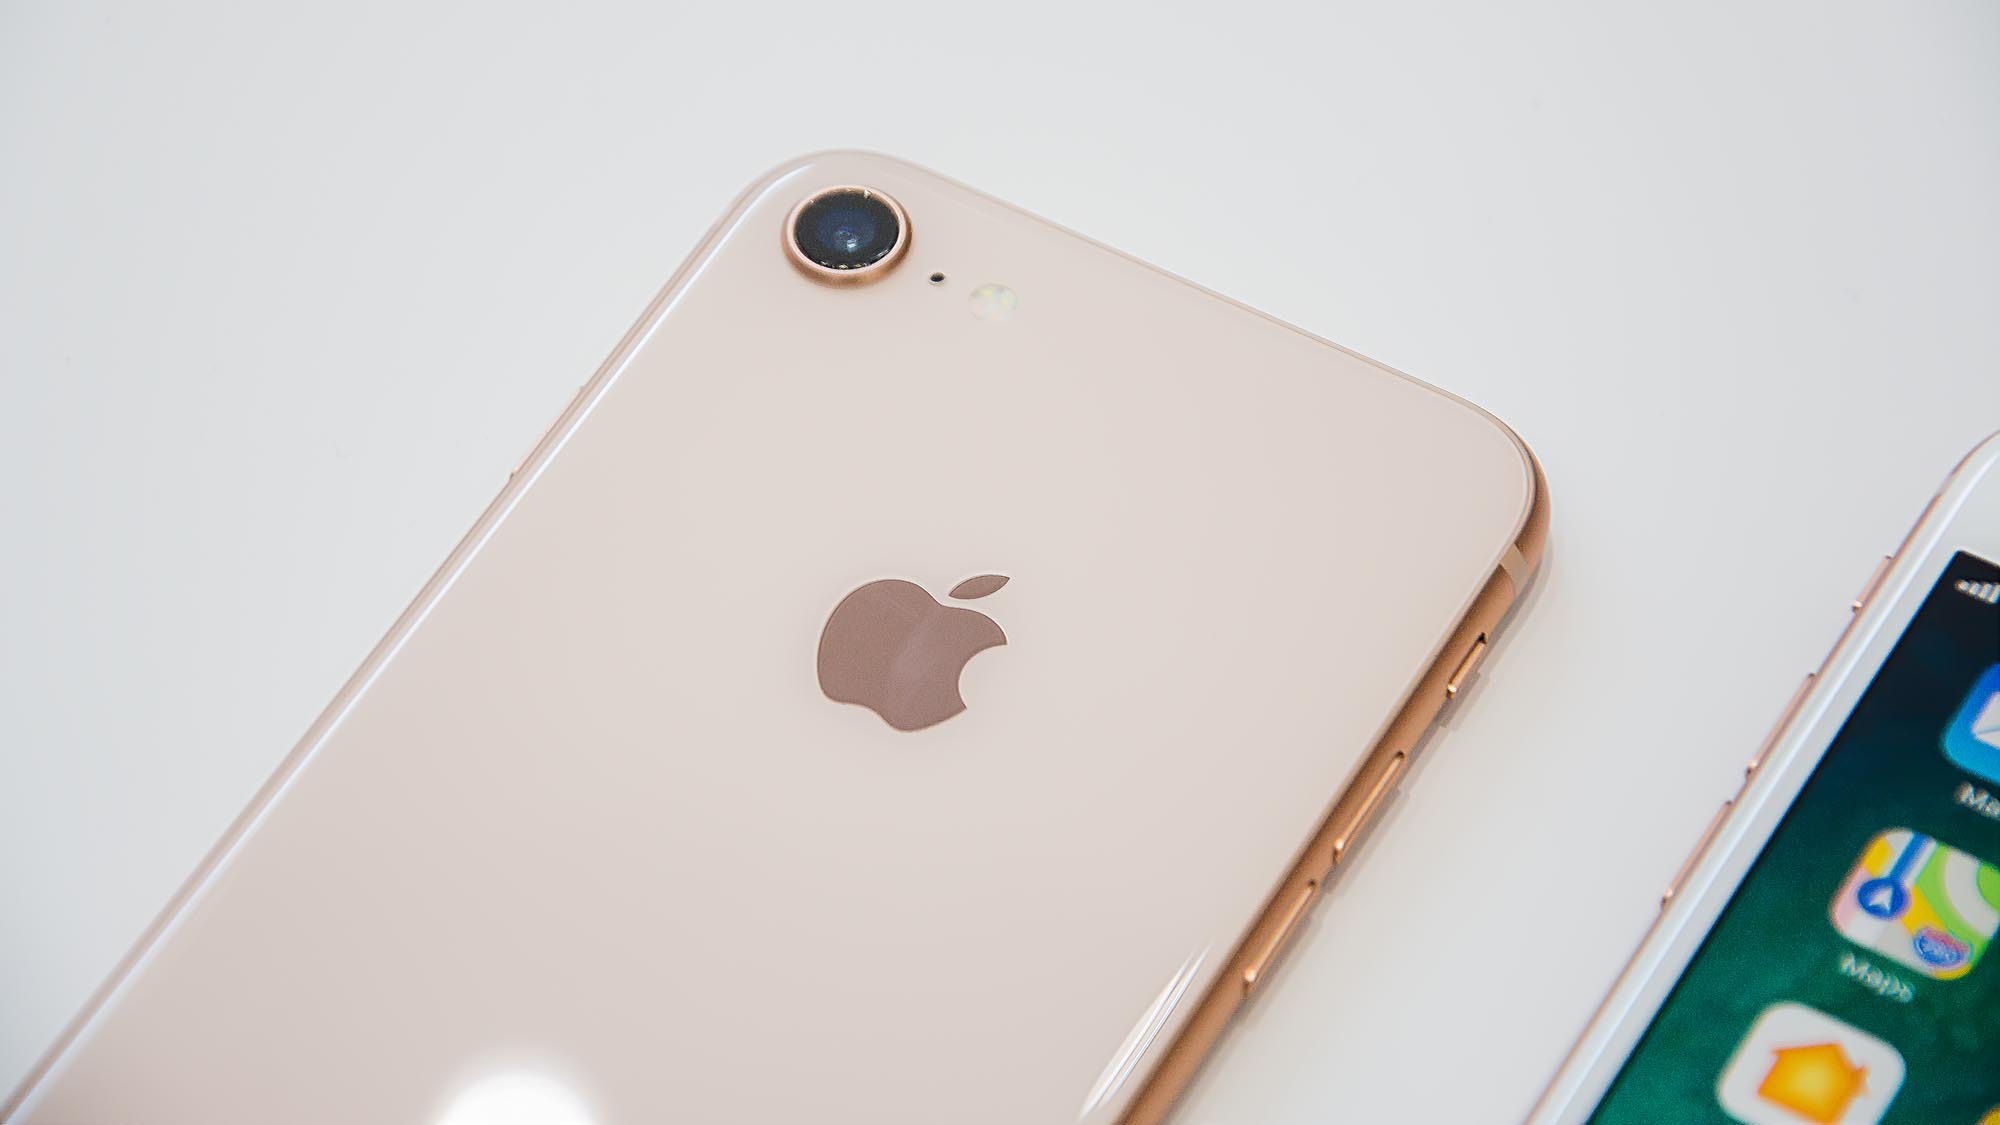 Video Recordings Have Been Slightly Improved With The New IPhone 8 Being Able To Capture 4K At 60fps Over 7s 30fps Cap